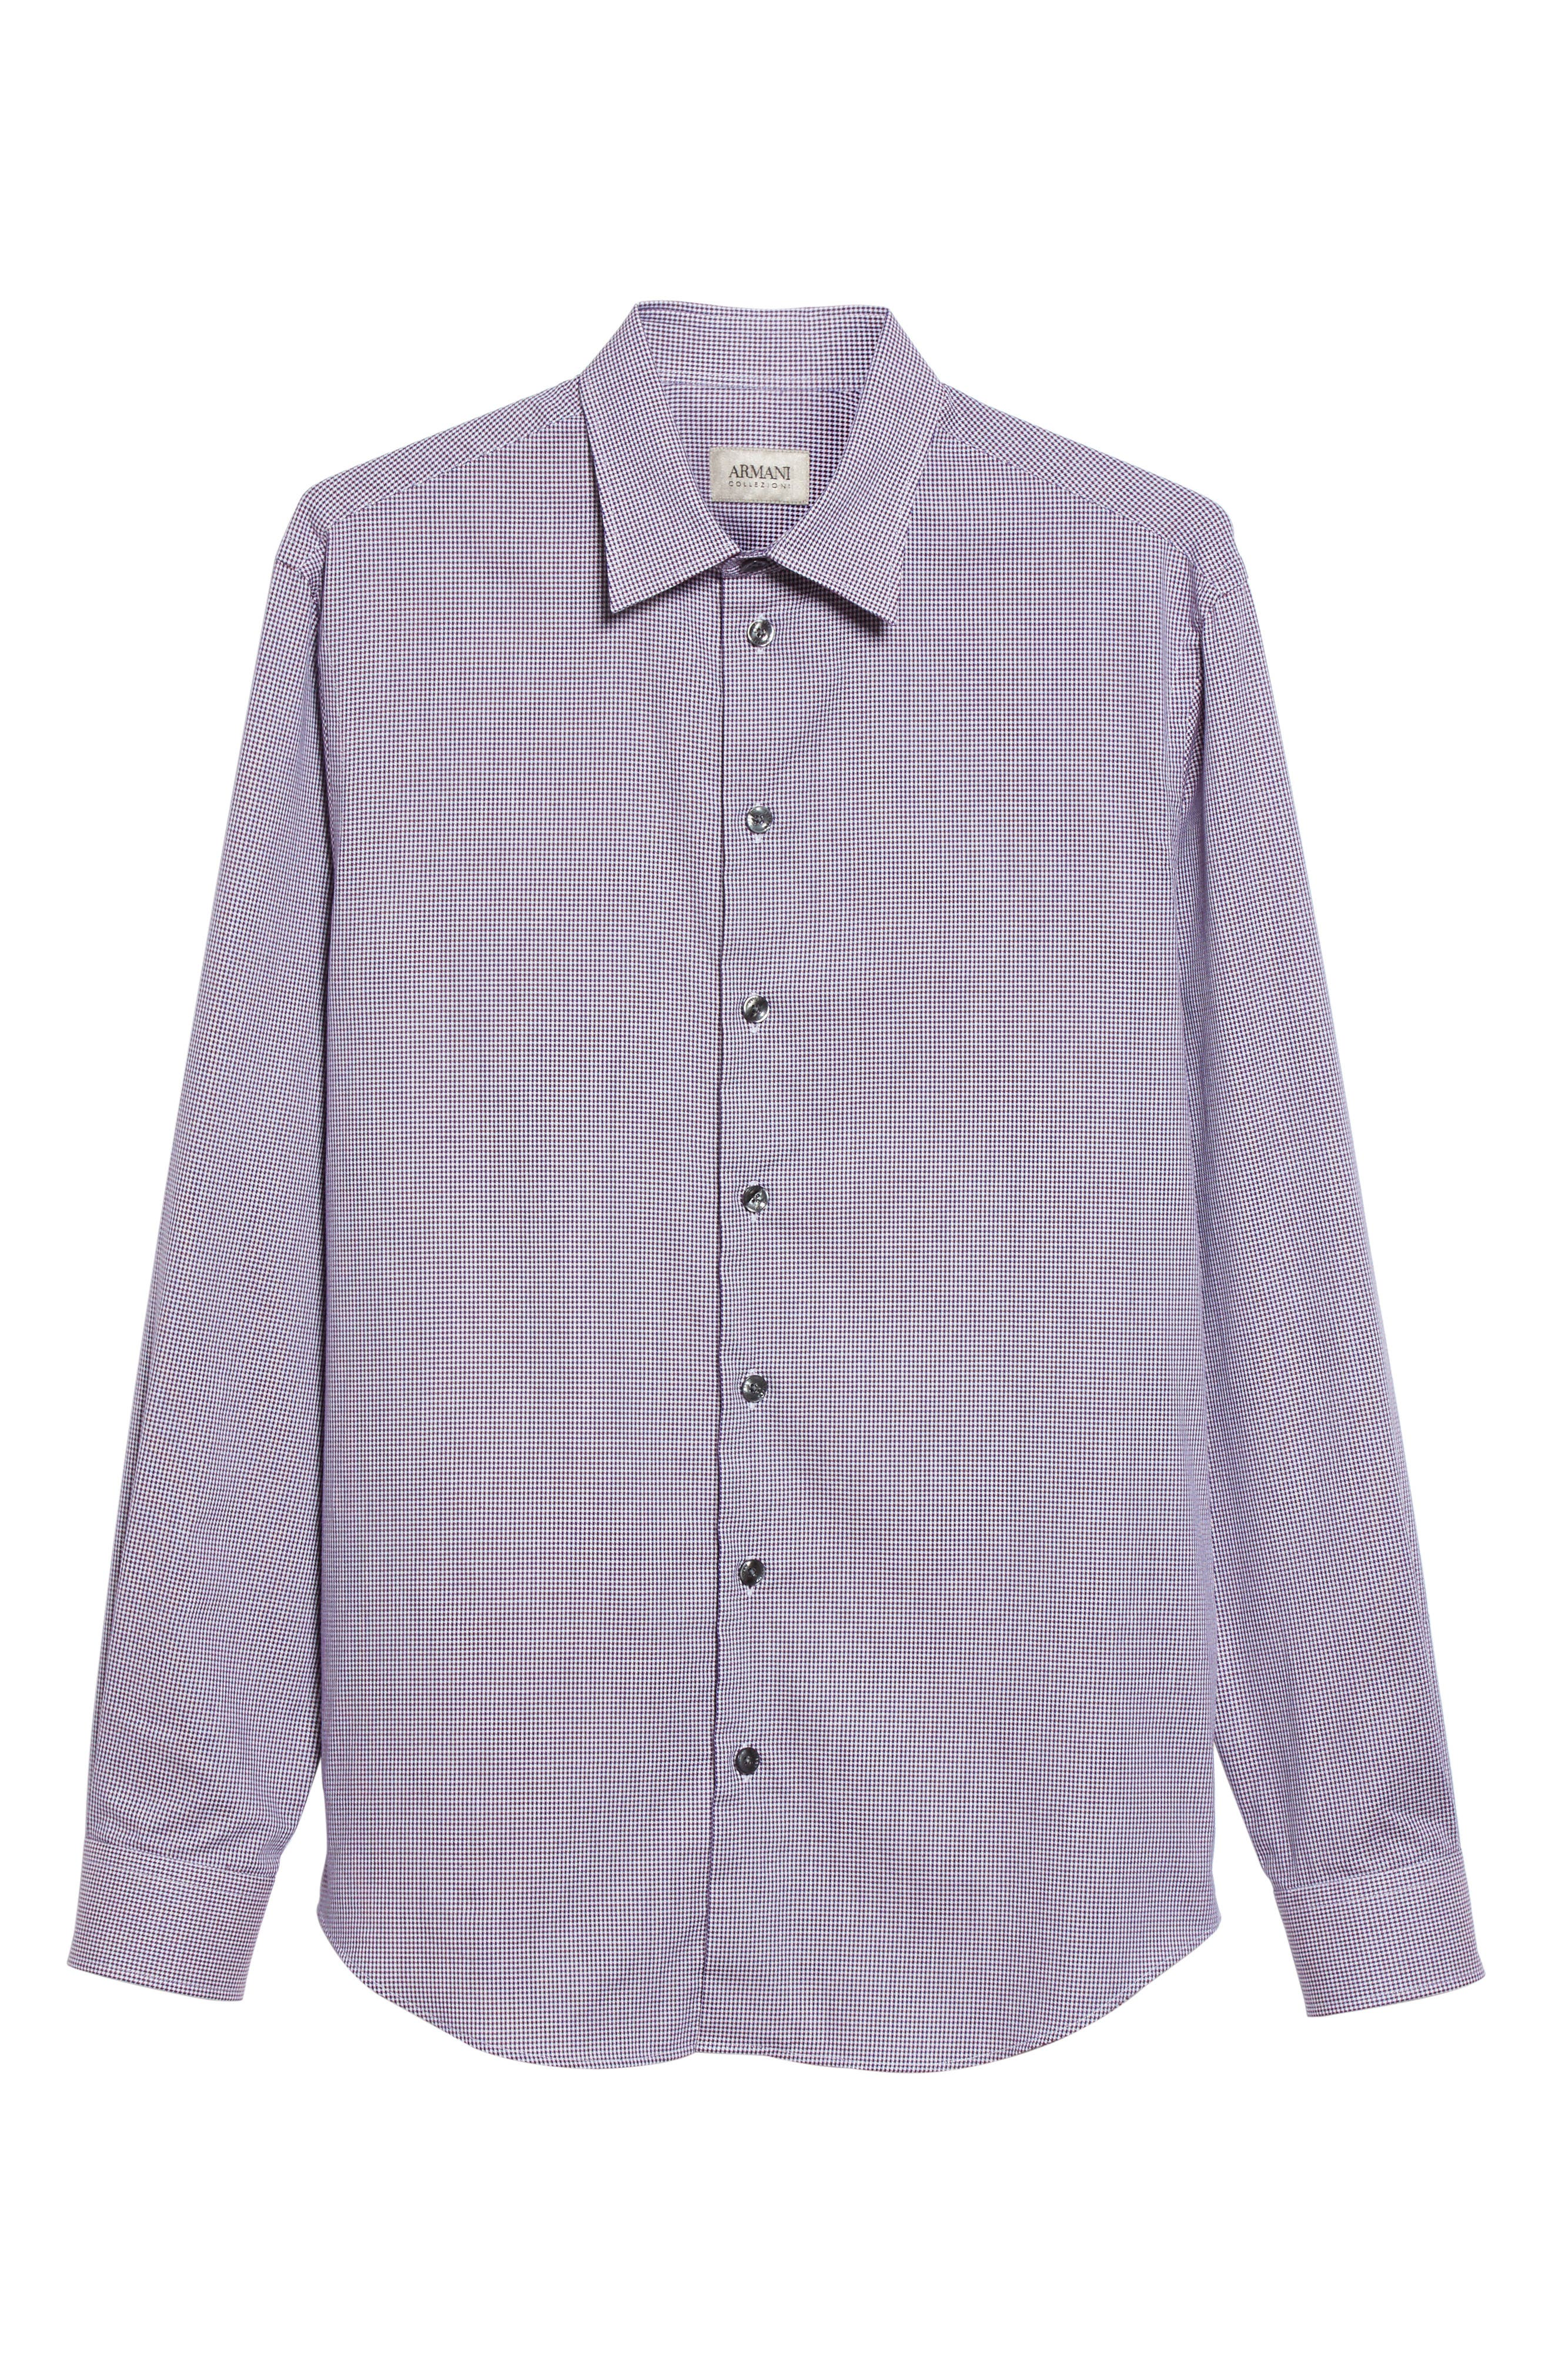 Regular Fit Houndstooth Sport Shirt,                             Alternate thumbnail 6, color,                             Anthracite/ Purple